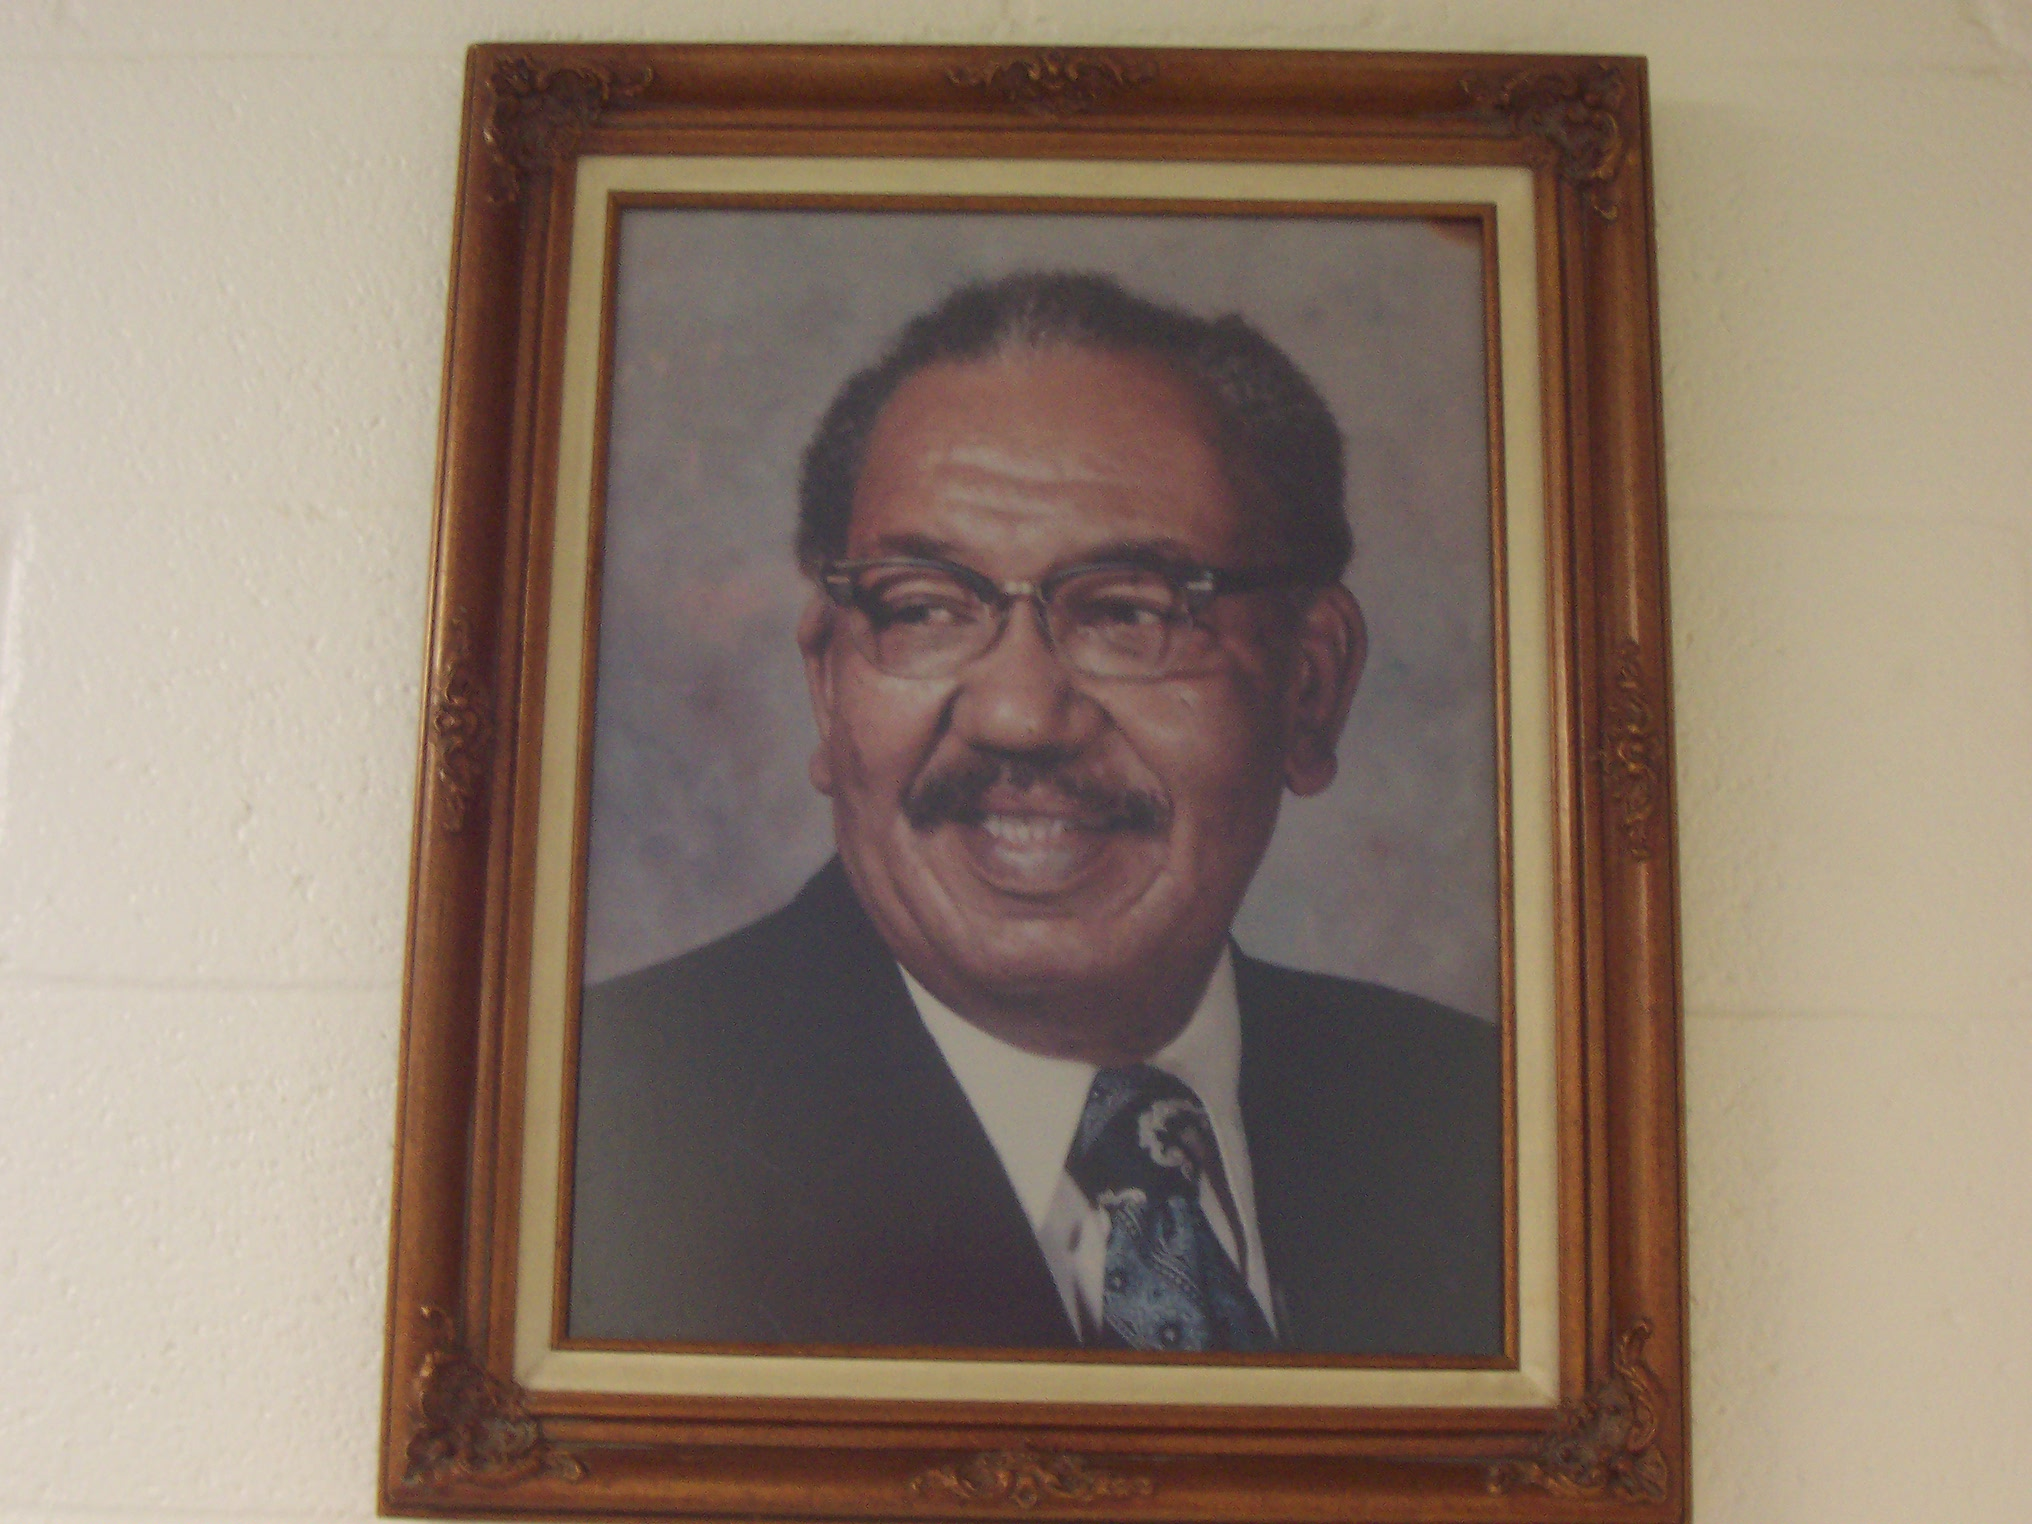 Mr. Henry McMillan - First Principal of Goulding Elementary